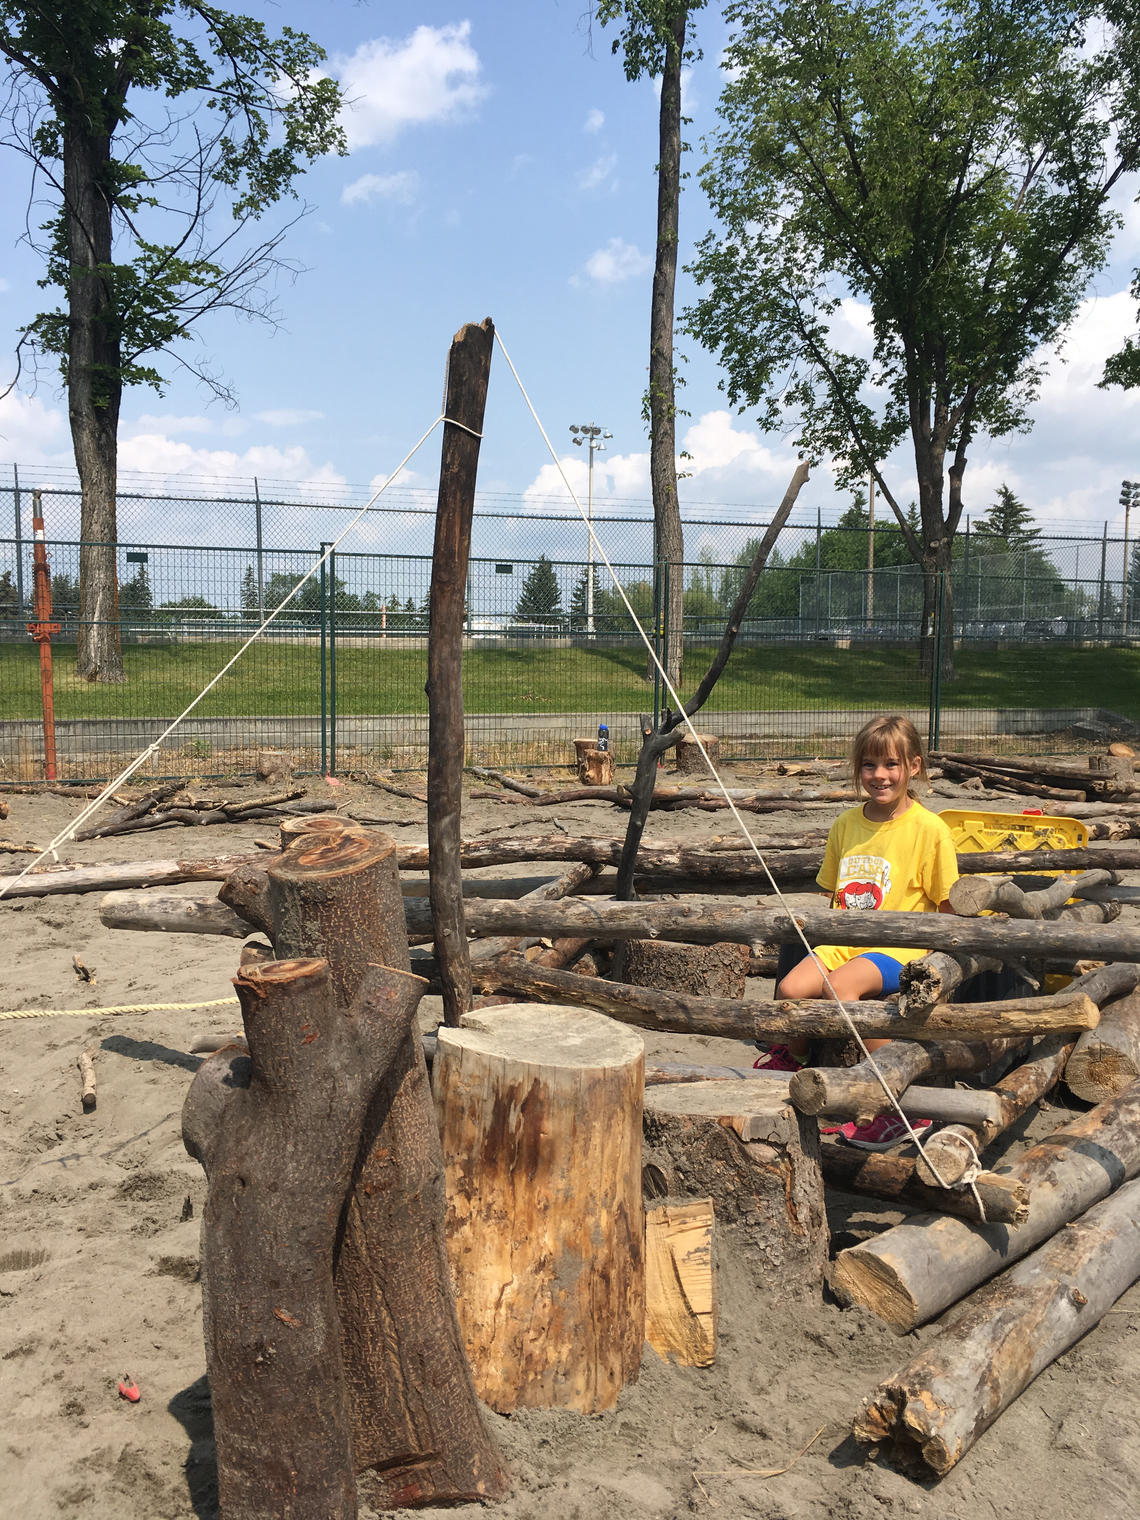 A large variety of building materials are available for summer campers to use their imaginations and interact with nature.